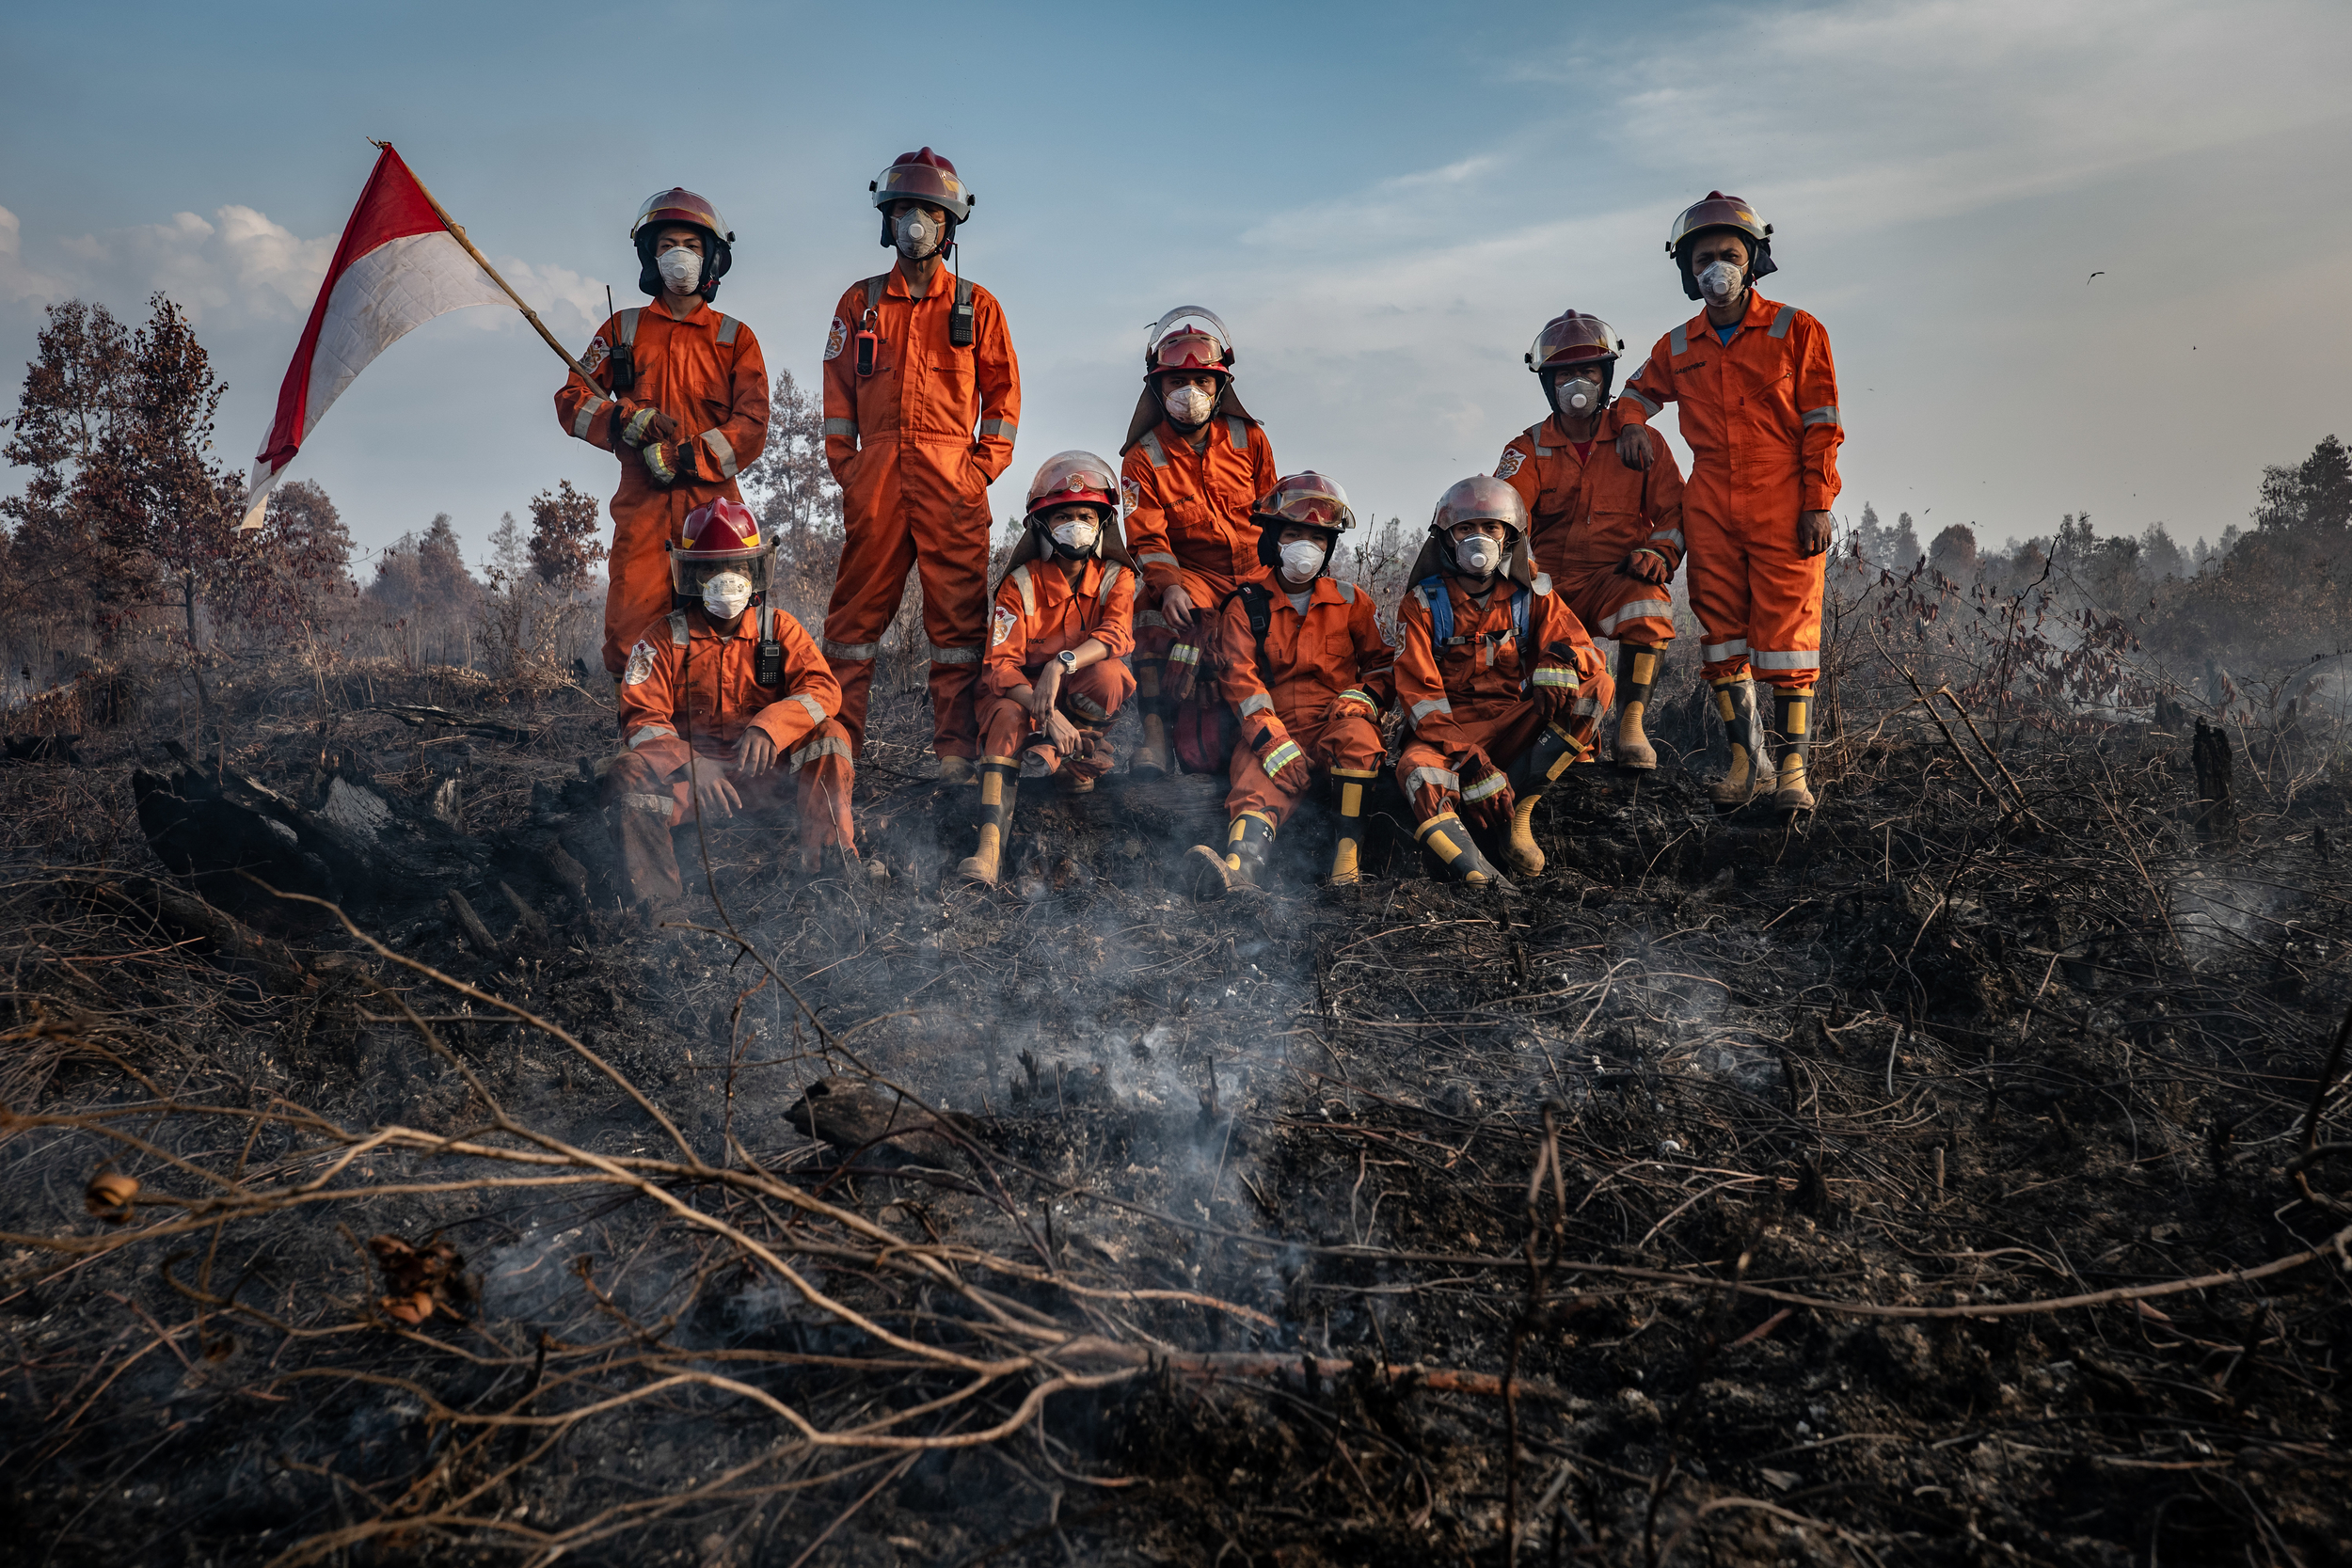 nine firefighters in orange hazmat suits with masks and helmets pose for a photo on a smouldering burnt patch of land